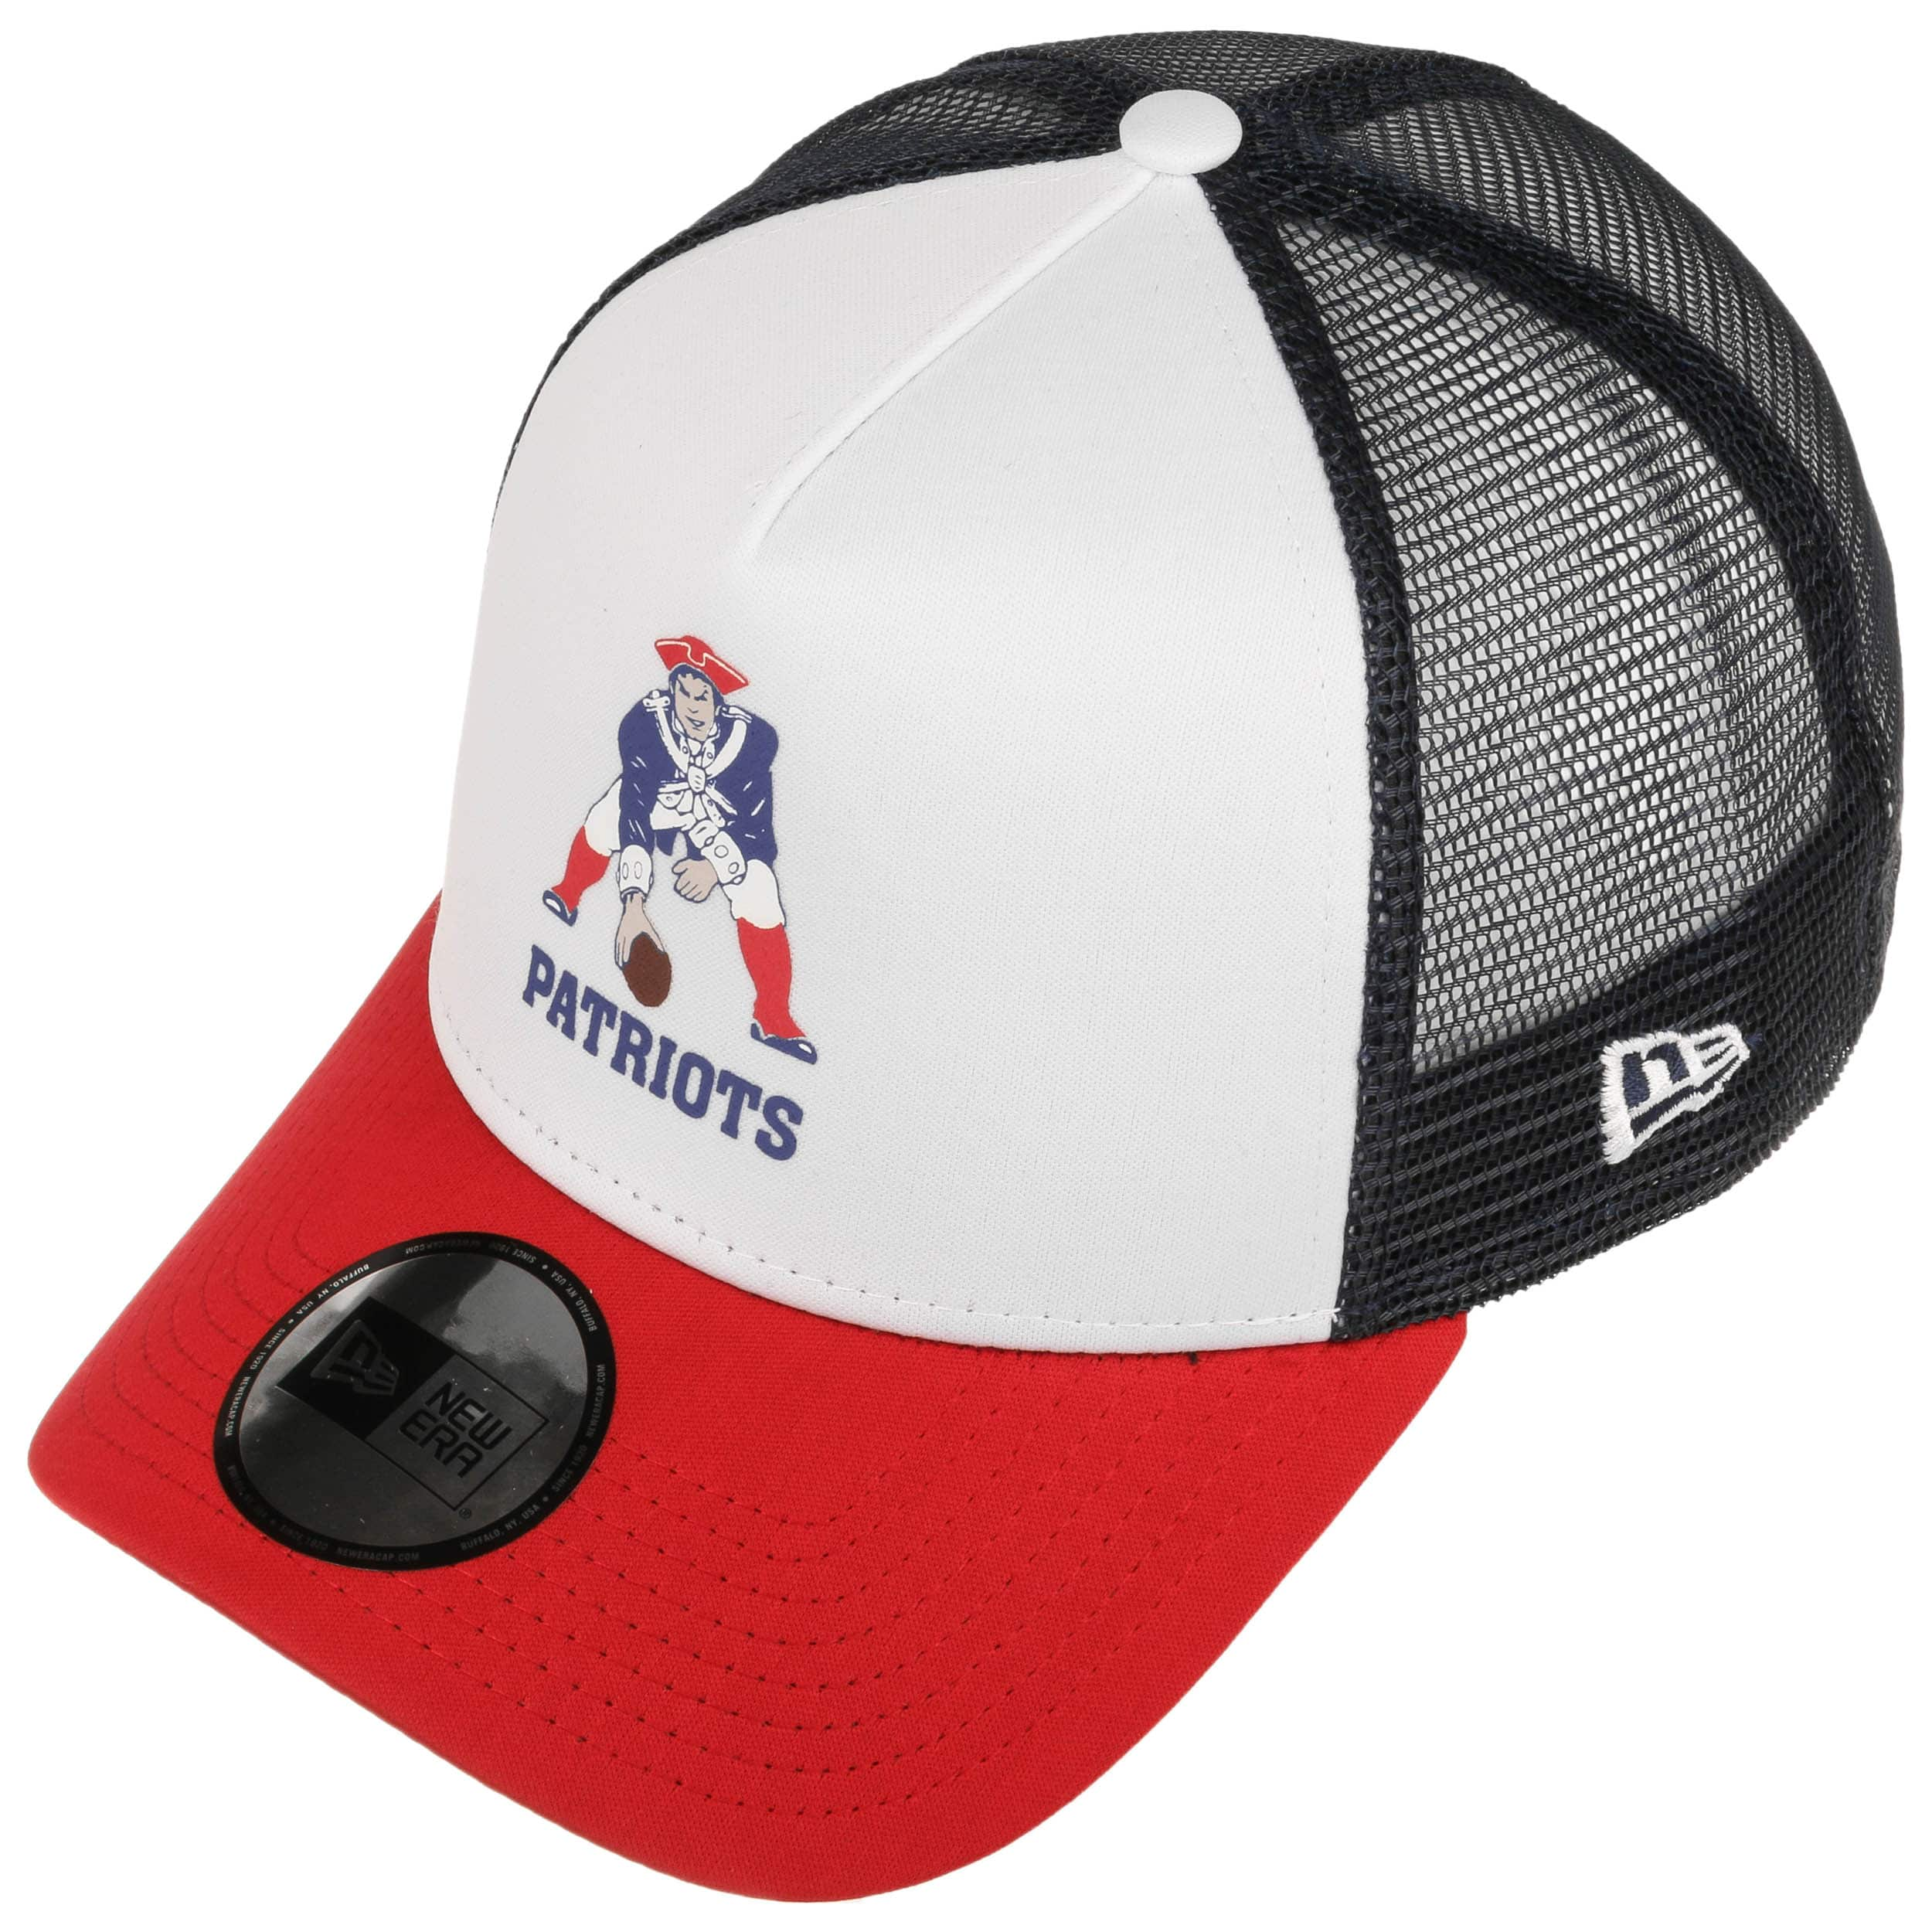 3ebccf8fa1e9 Casquette NFL Throwback Trucker Pats by New Era - blanc 1 ...